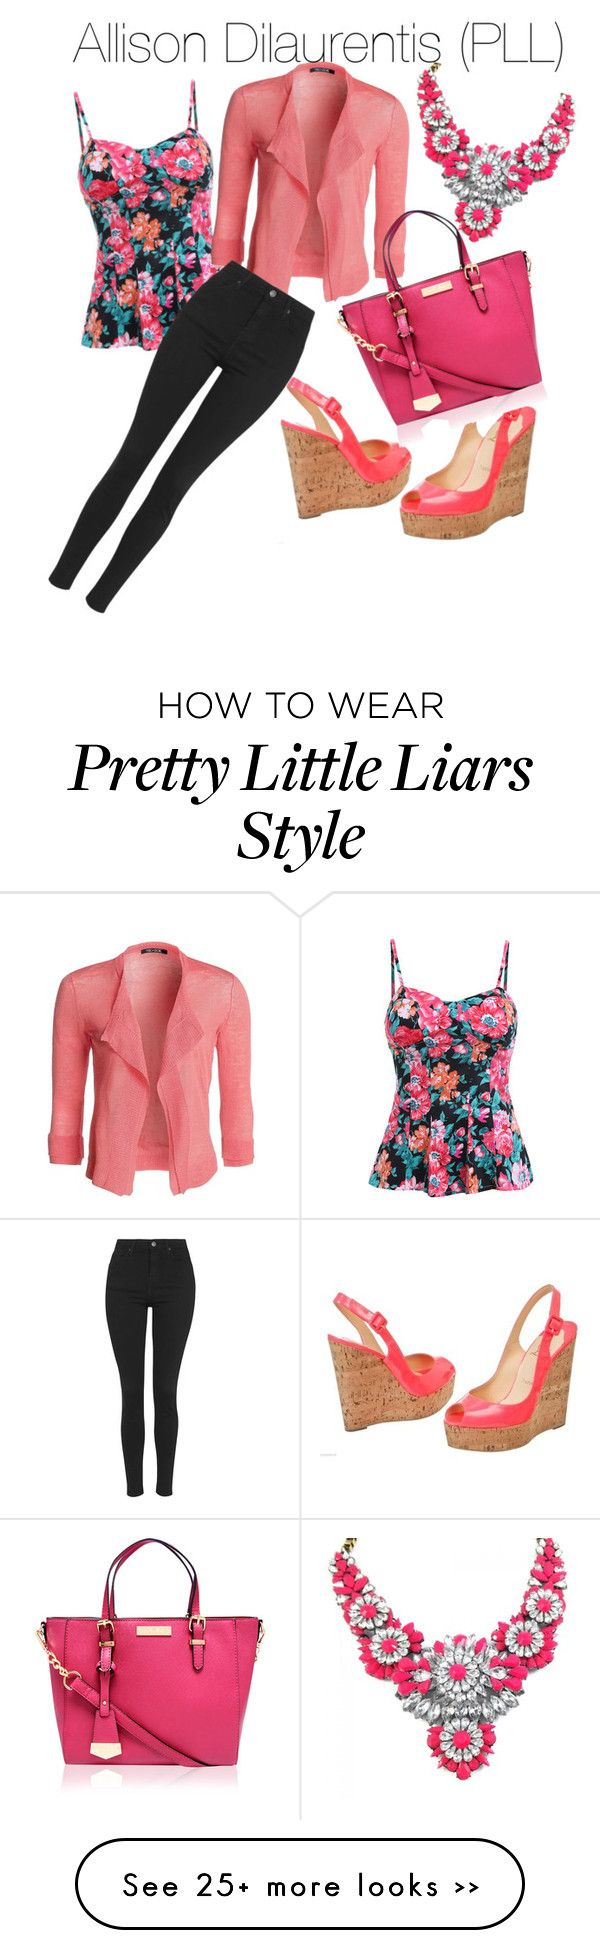 """Alison Dilaurentis style (Pretty Little Liars)"" by lilxmaya on Polyvore"